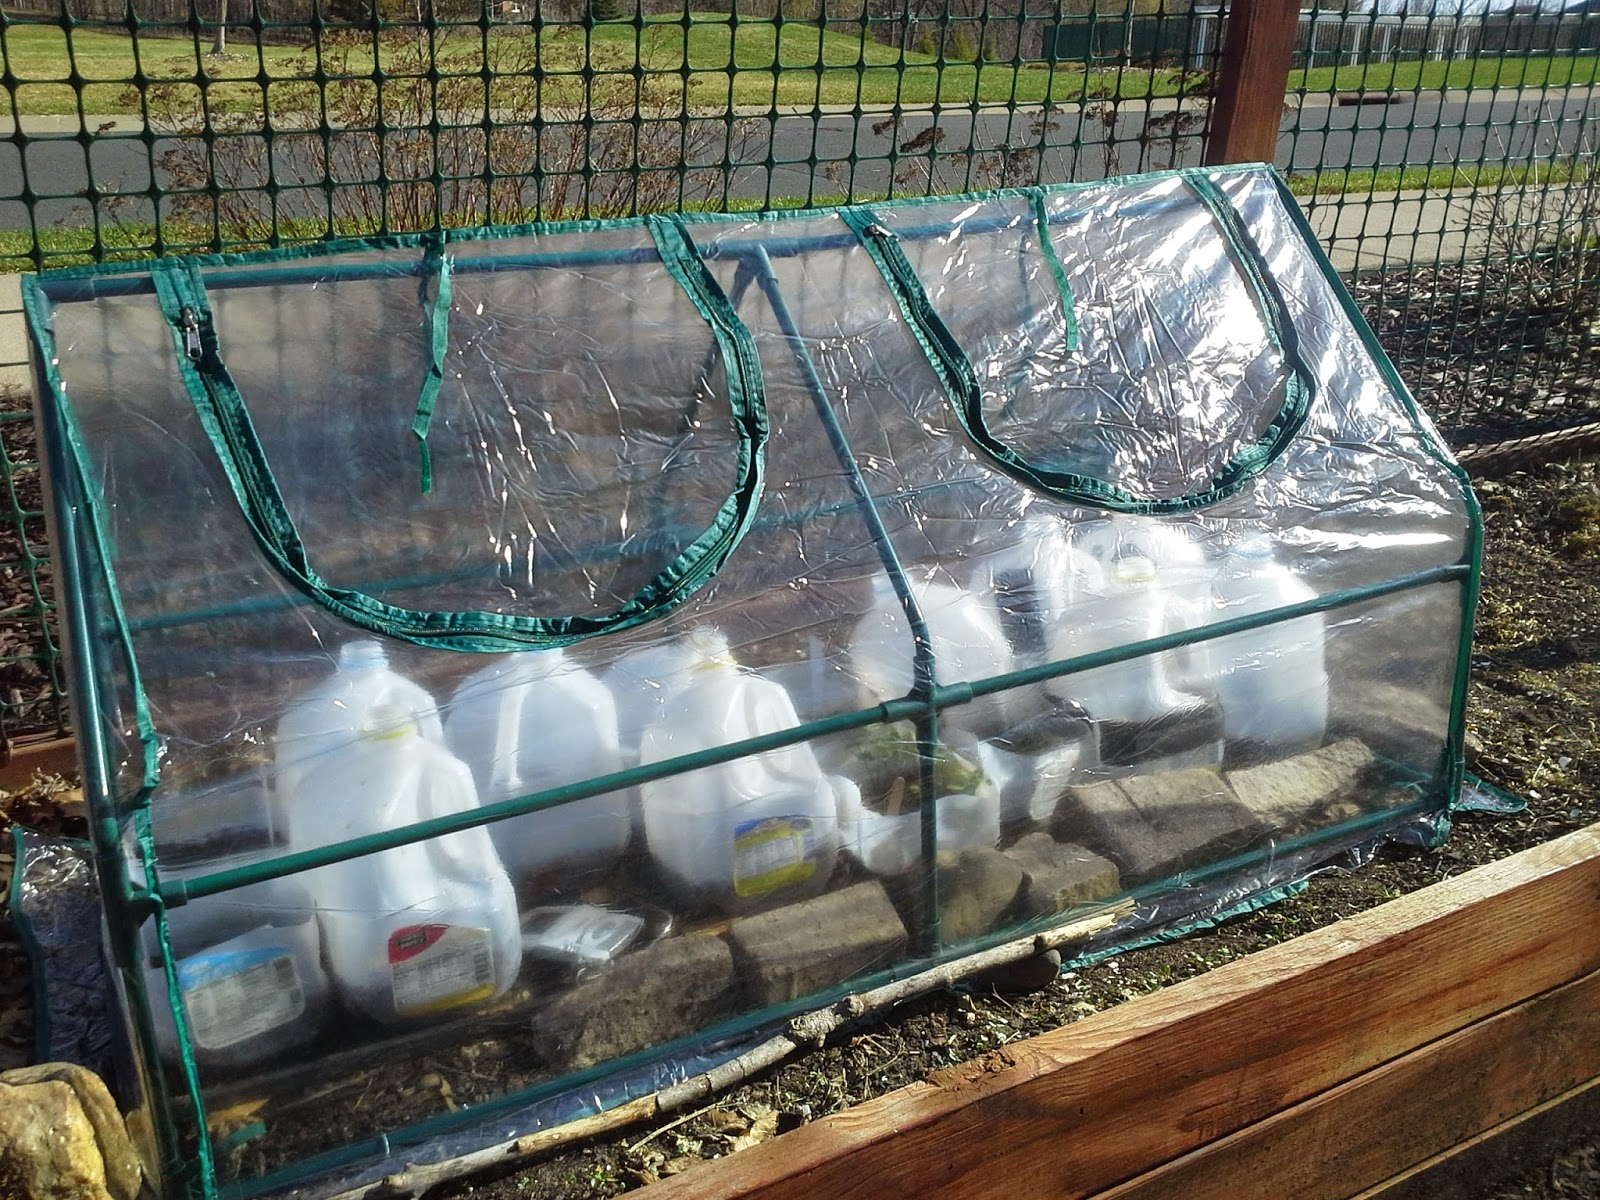 Growing in milk cartons in greenhouse